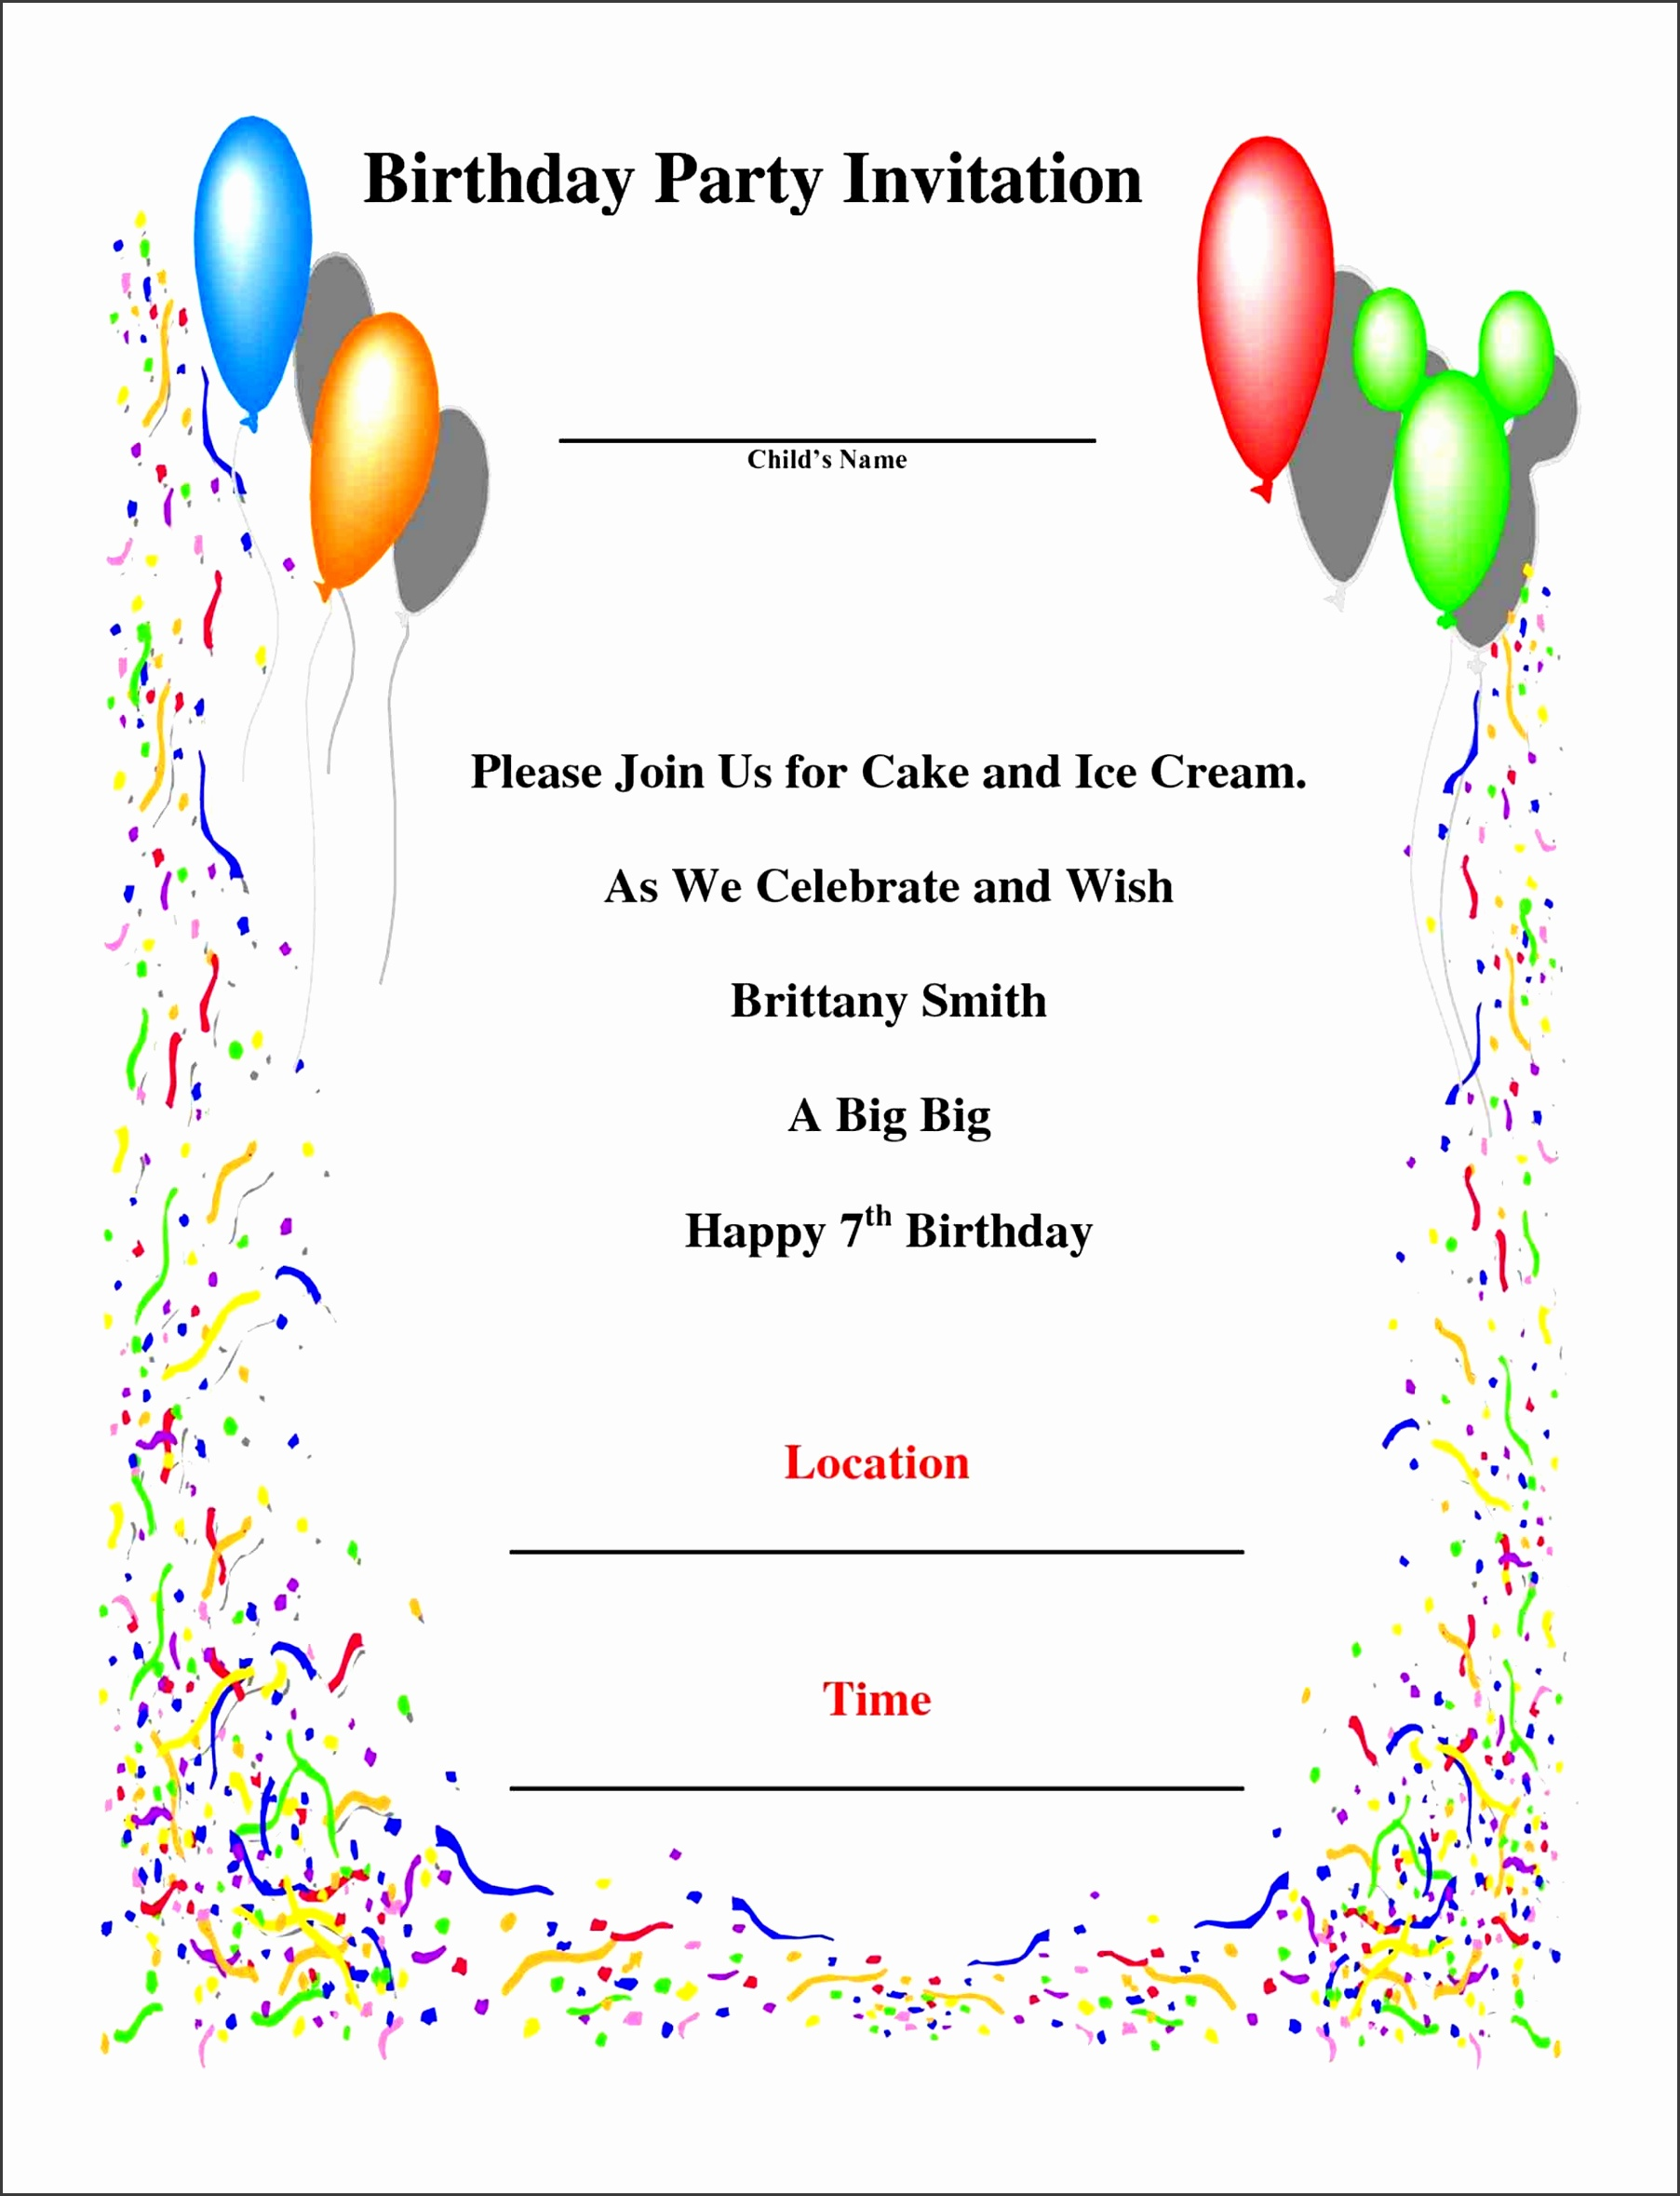 Word template birthday invitation 4birthdayfo with microsoft microsoft word template birthday invitation s mughals mughals word